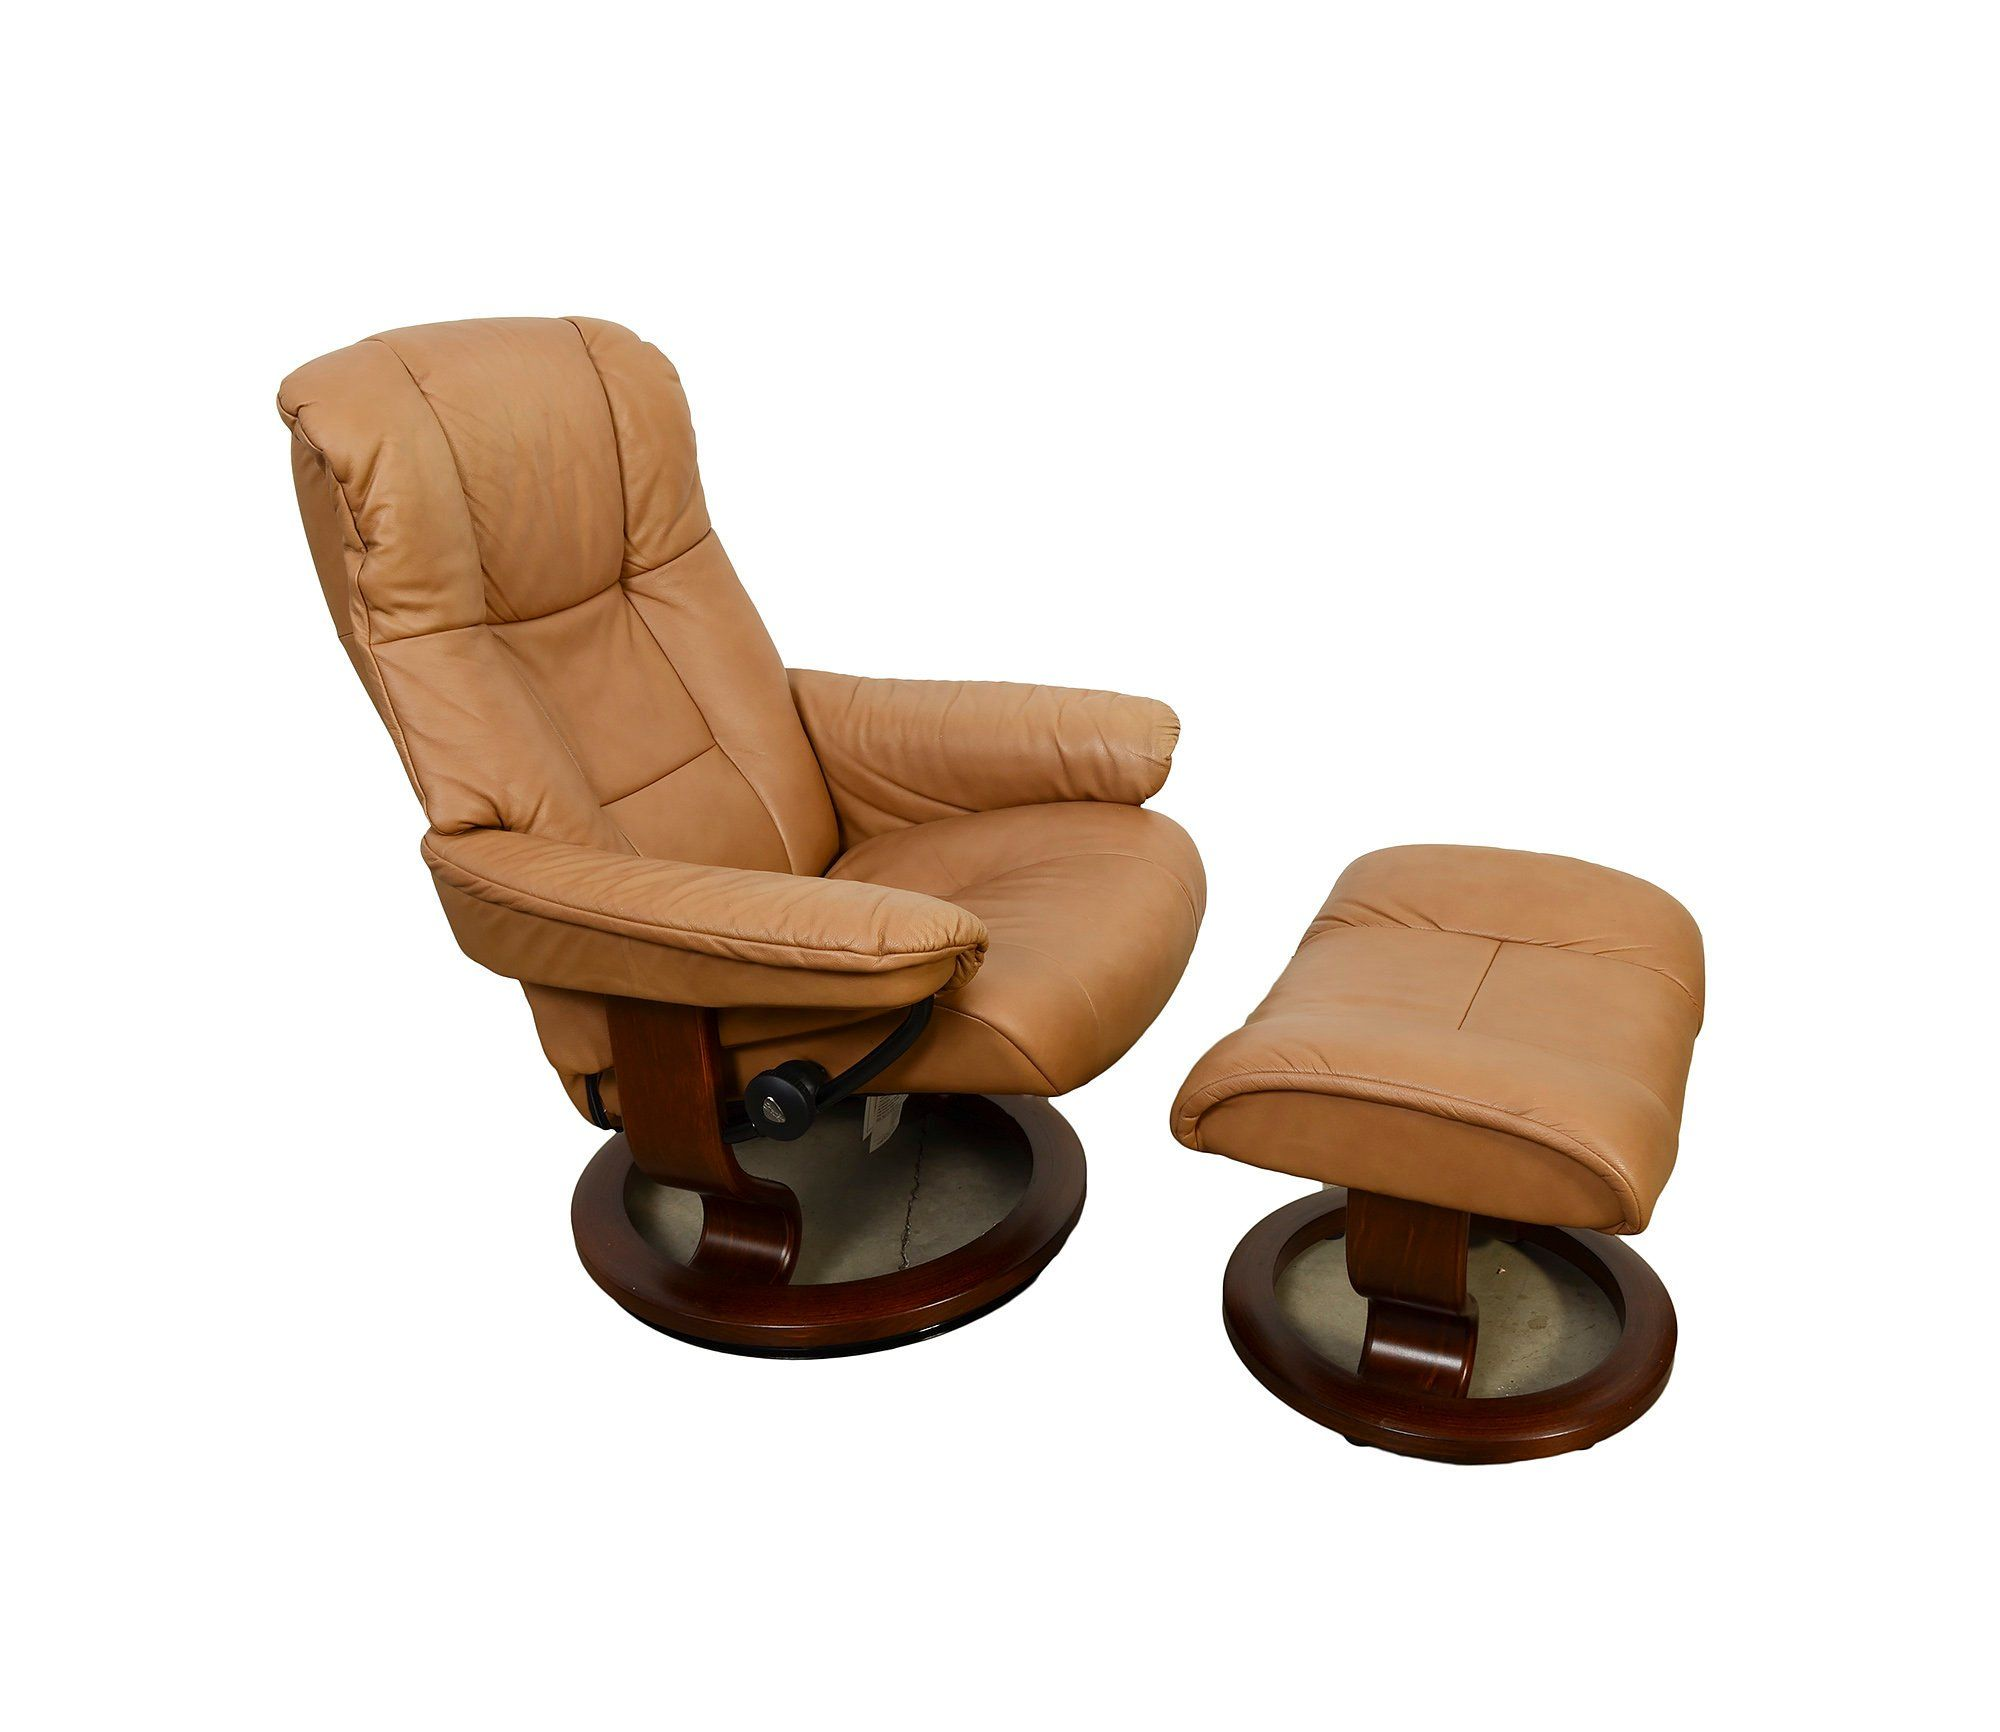 Superb Leather Ekornes Stressless Reclining Chair Ottoman Norway Caraccident5 Cool Chair Designs And Ideas Caraccident5Info